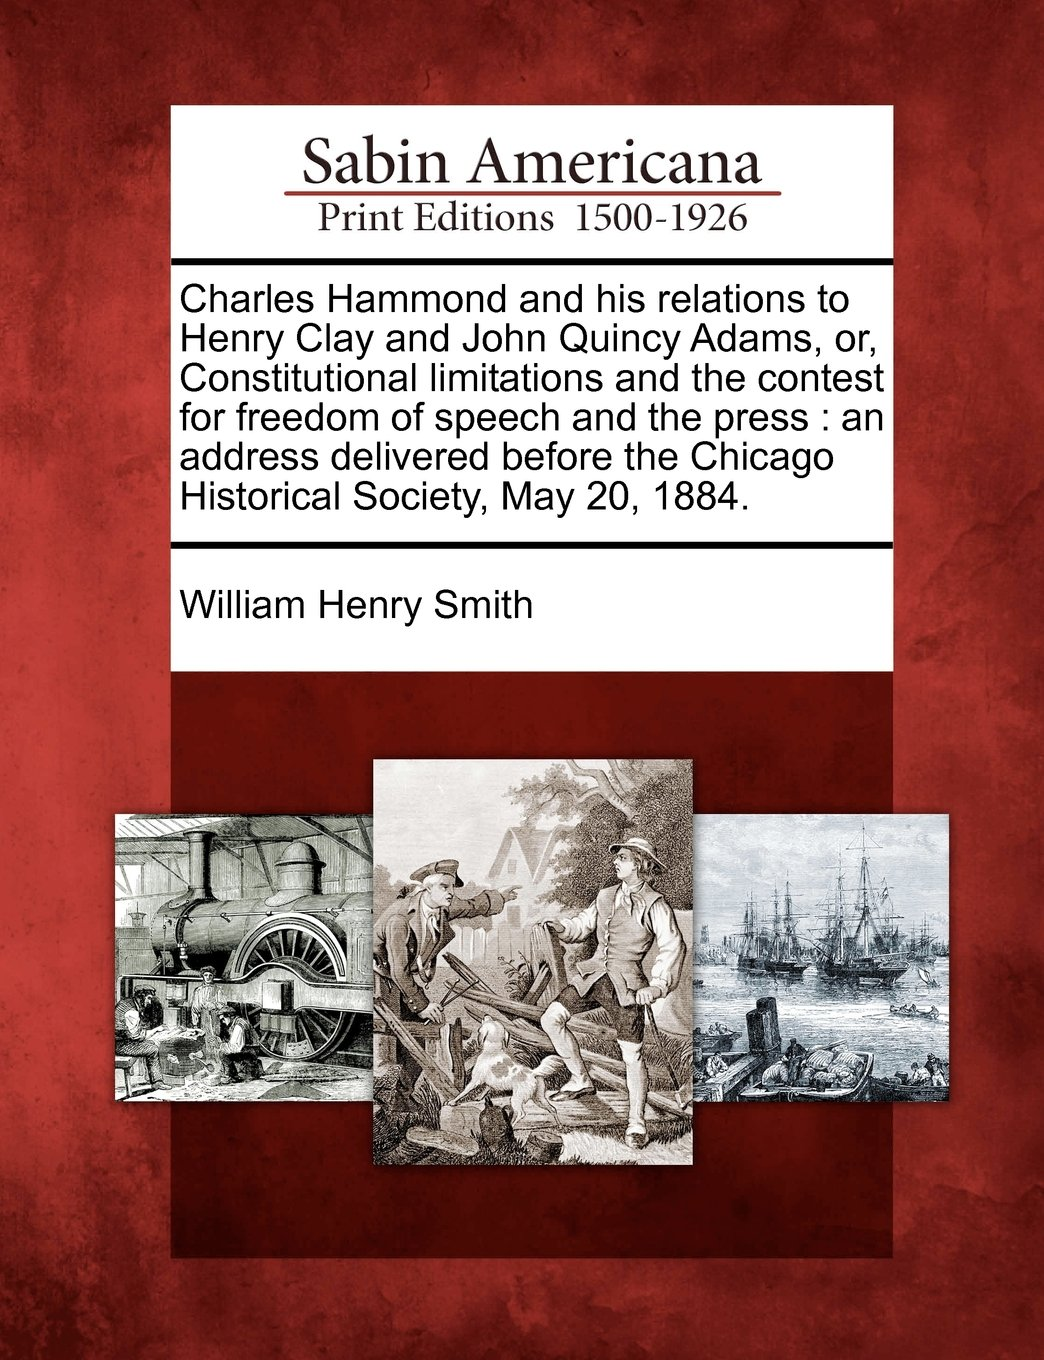 Download Charles Hammond and his relations to Henry Clay and John Quincy Adams, or, Constitutional limitations and the contest for freedom of speech and the ... the Chicago Historical Society, May 20, 1884. pdf epub